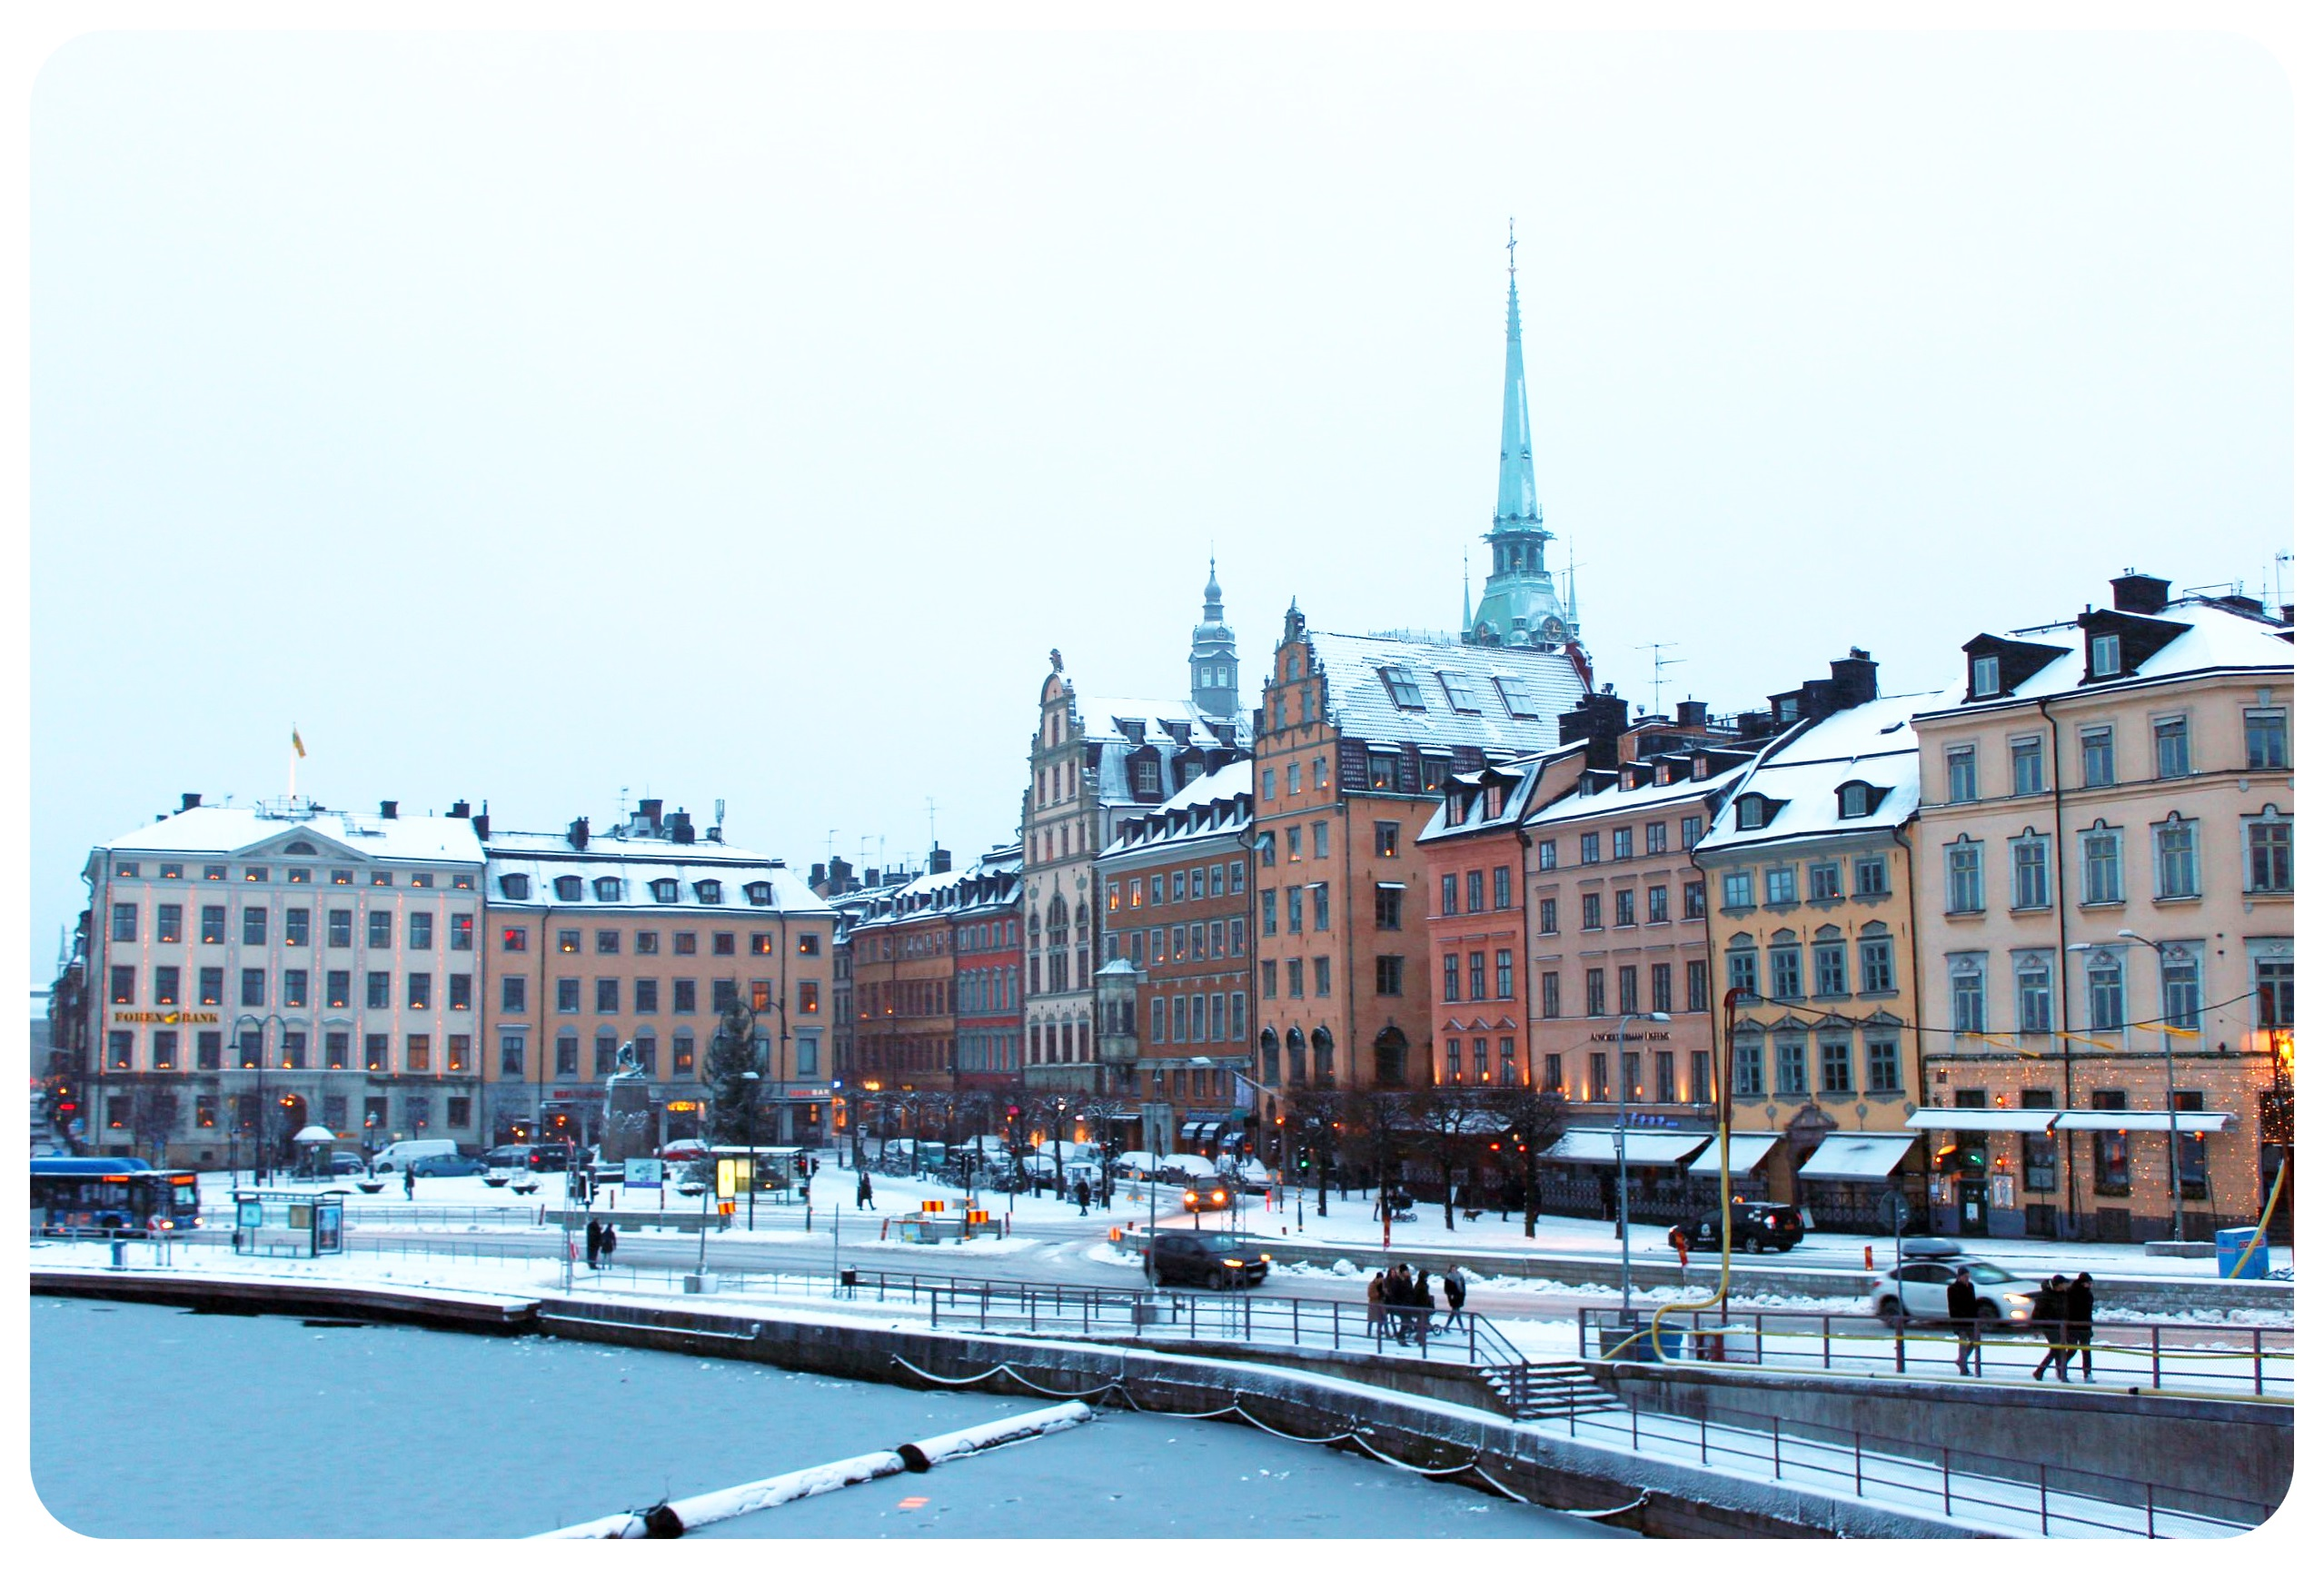 stockholm in the snow - photo #30